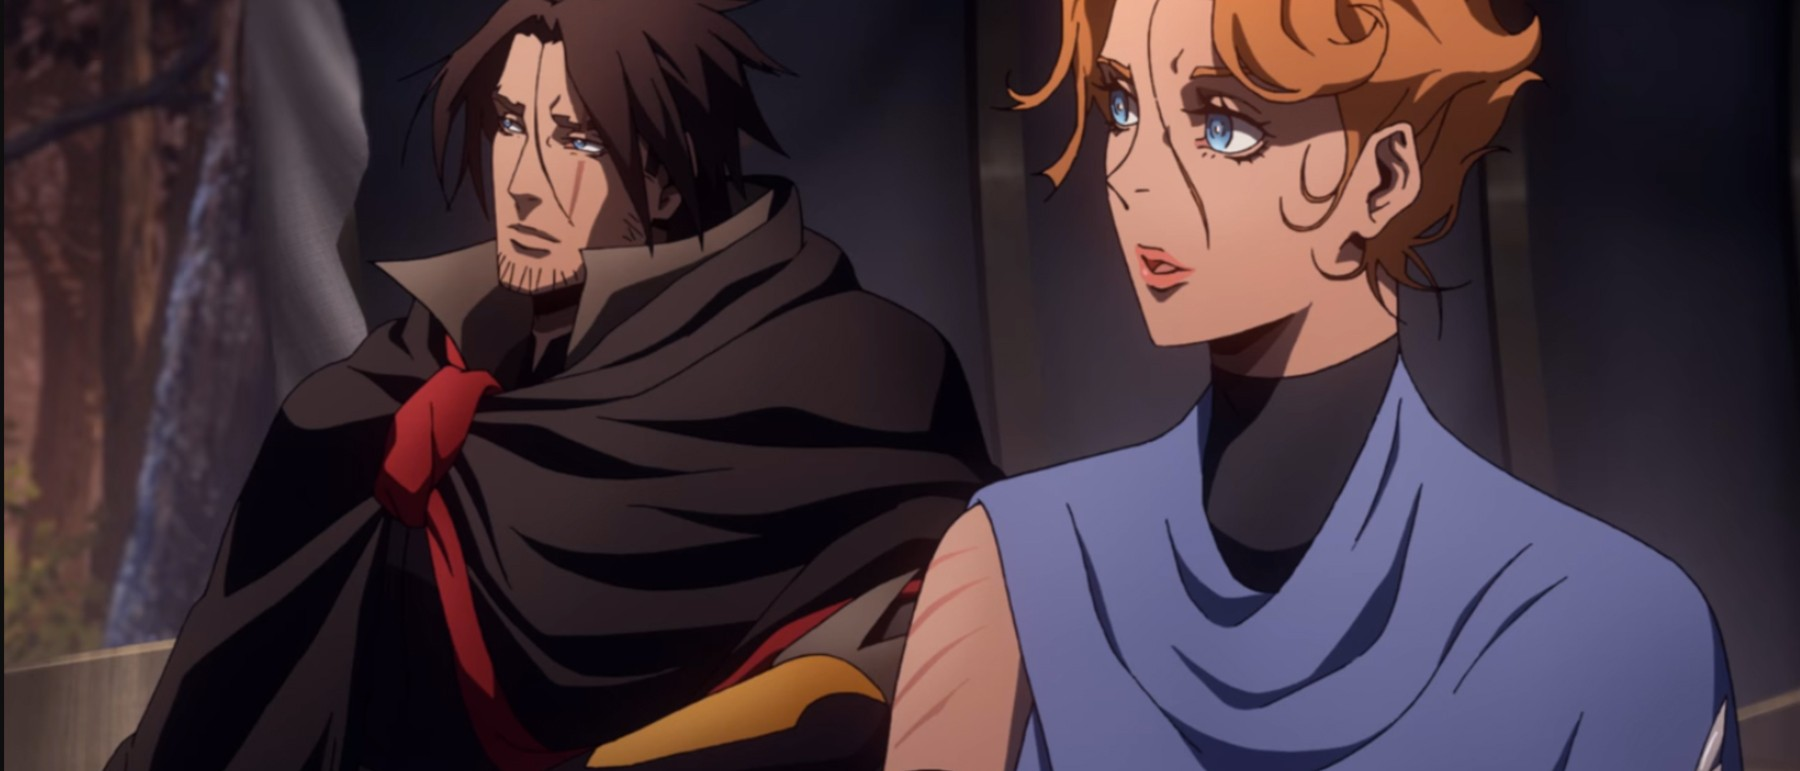 Preview And Release Date: Castlevania Season 4